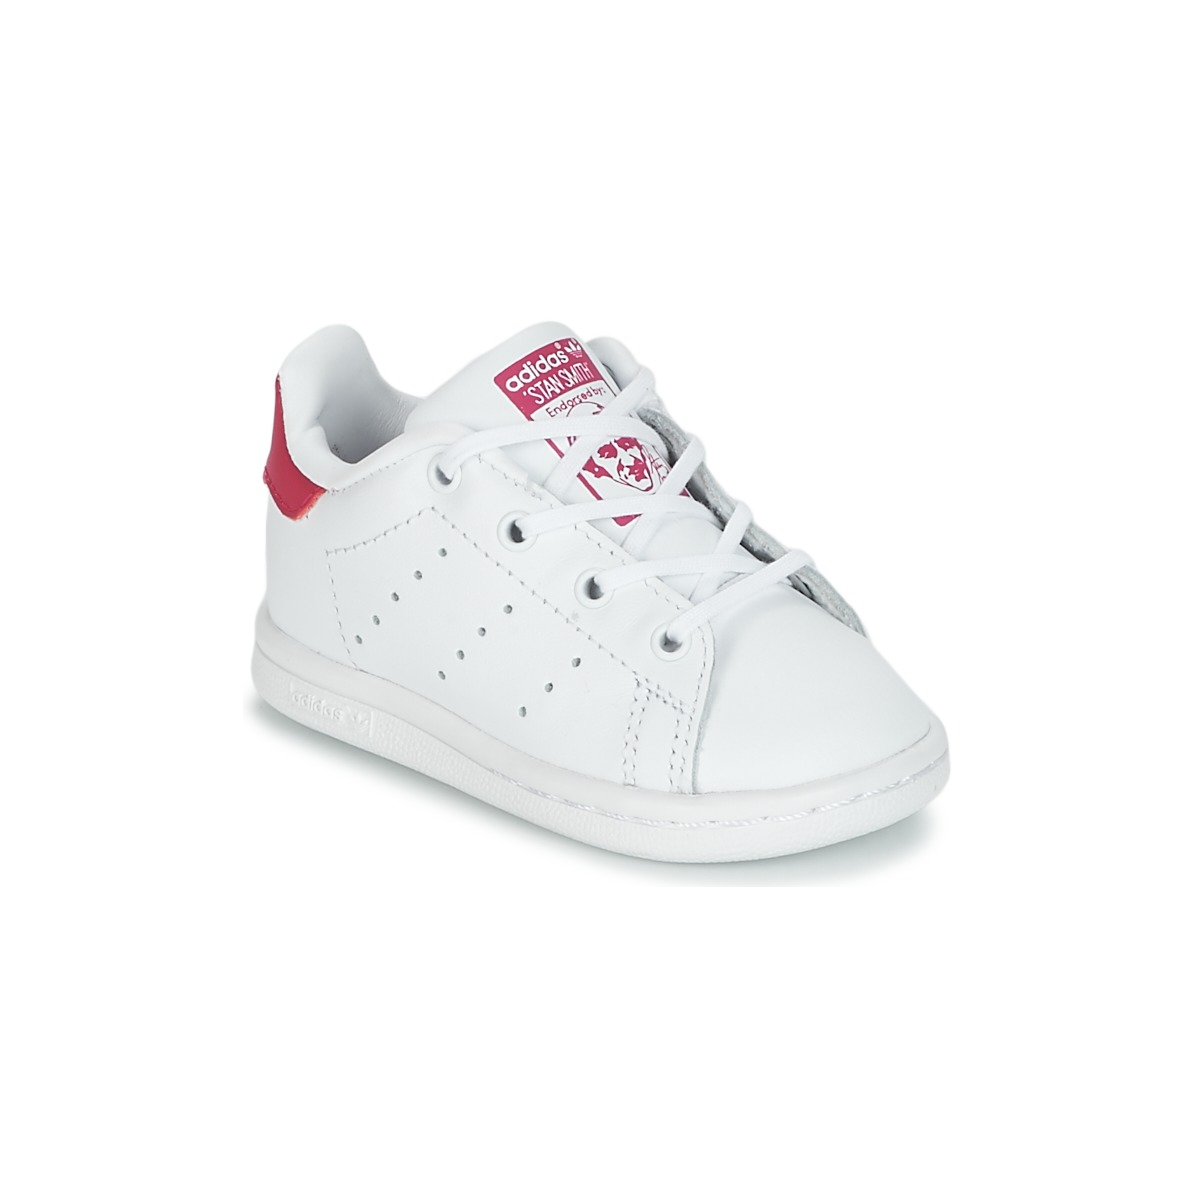 2abbd509894 Xαμηλά Sneakers adidas STAN SMITH I, Παιδικά sneakers, ΠΑΙΔΙ ...